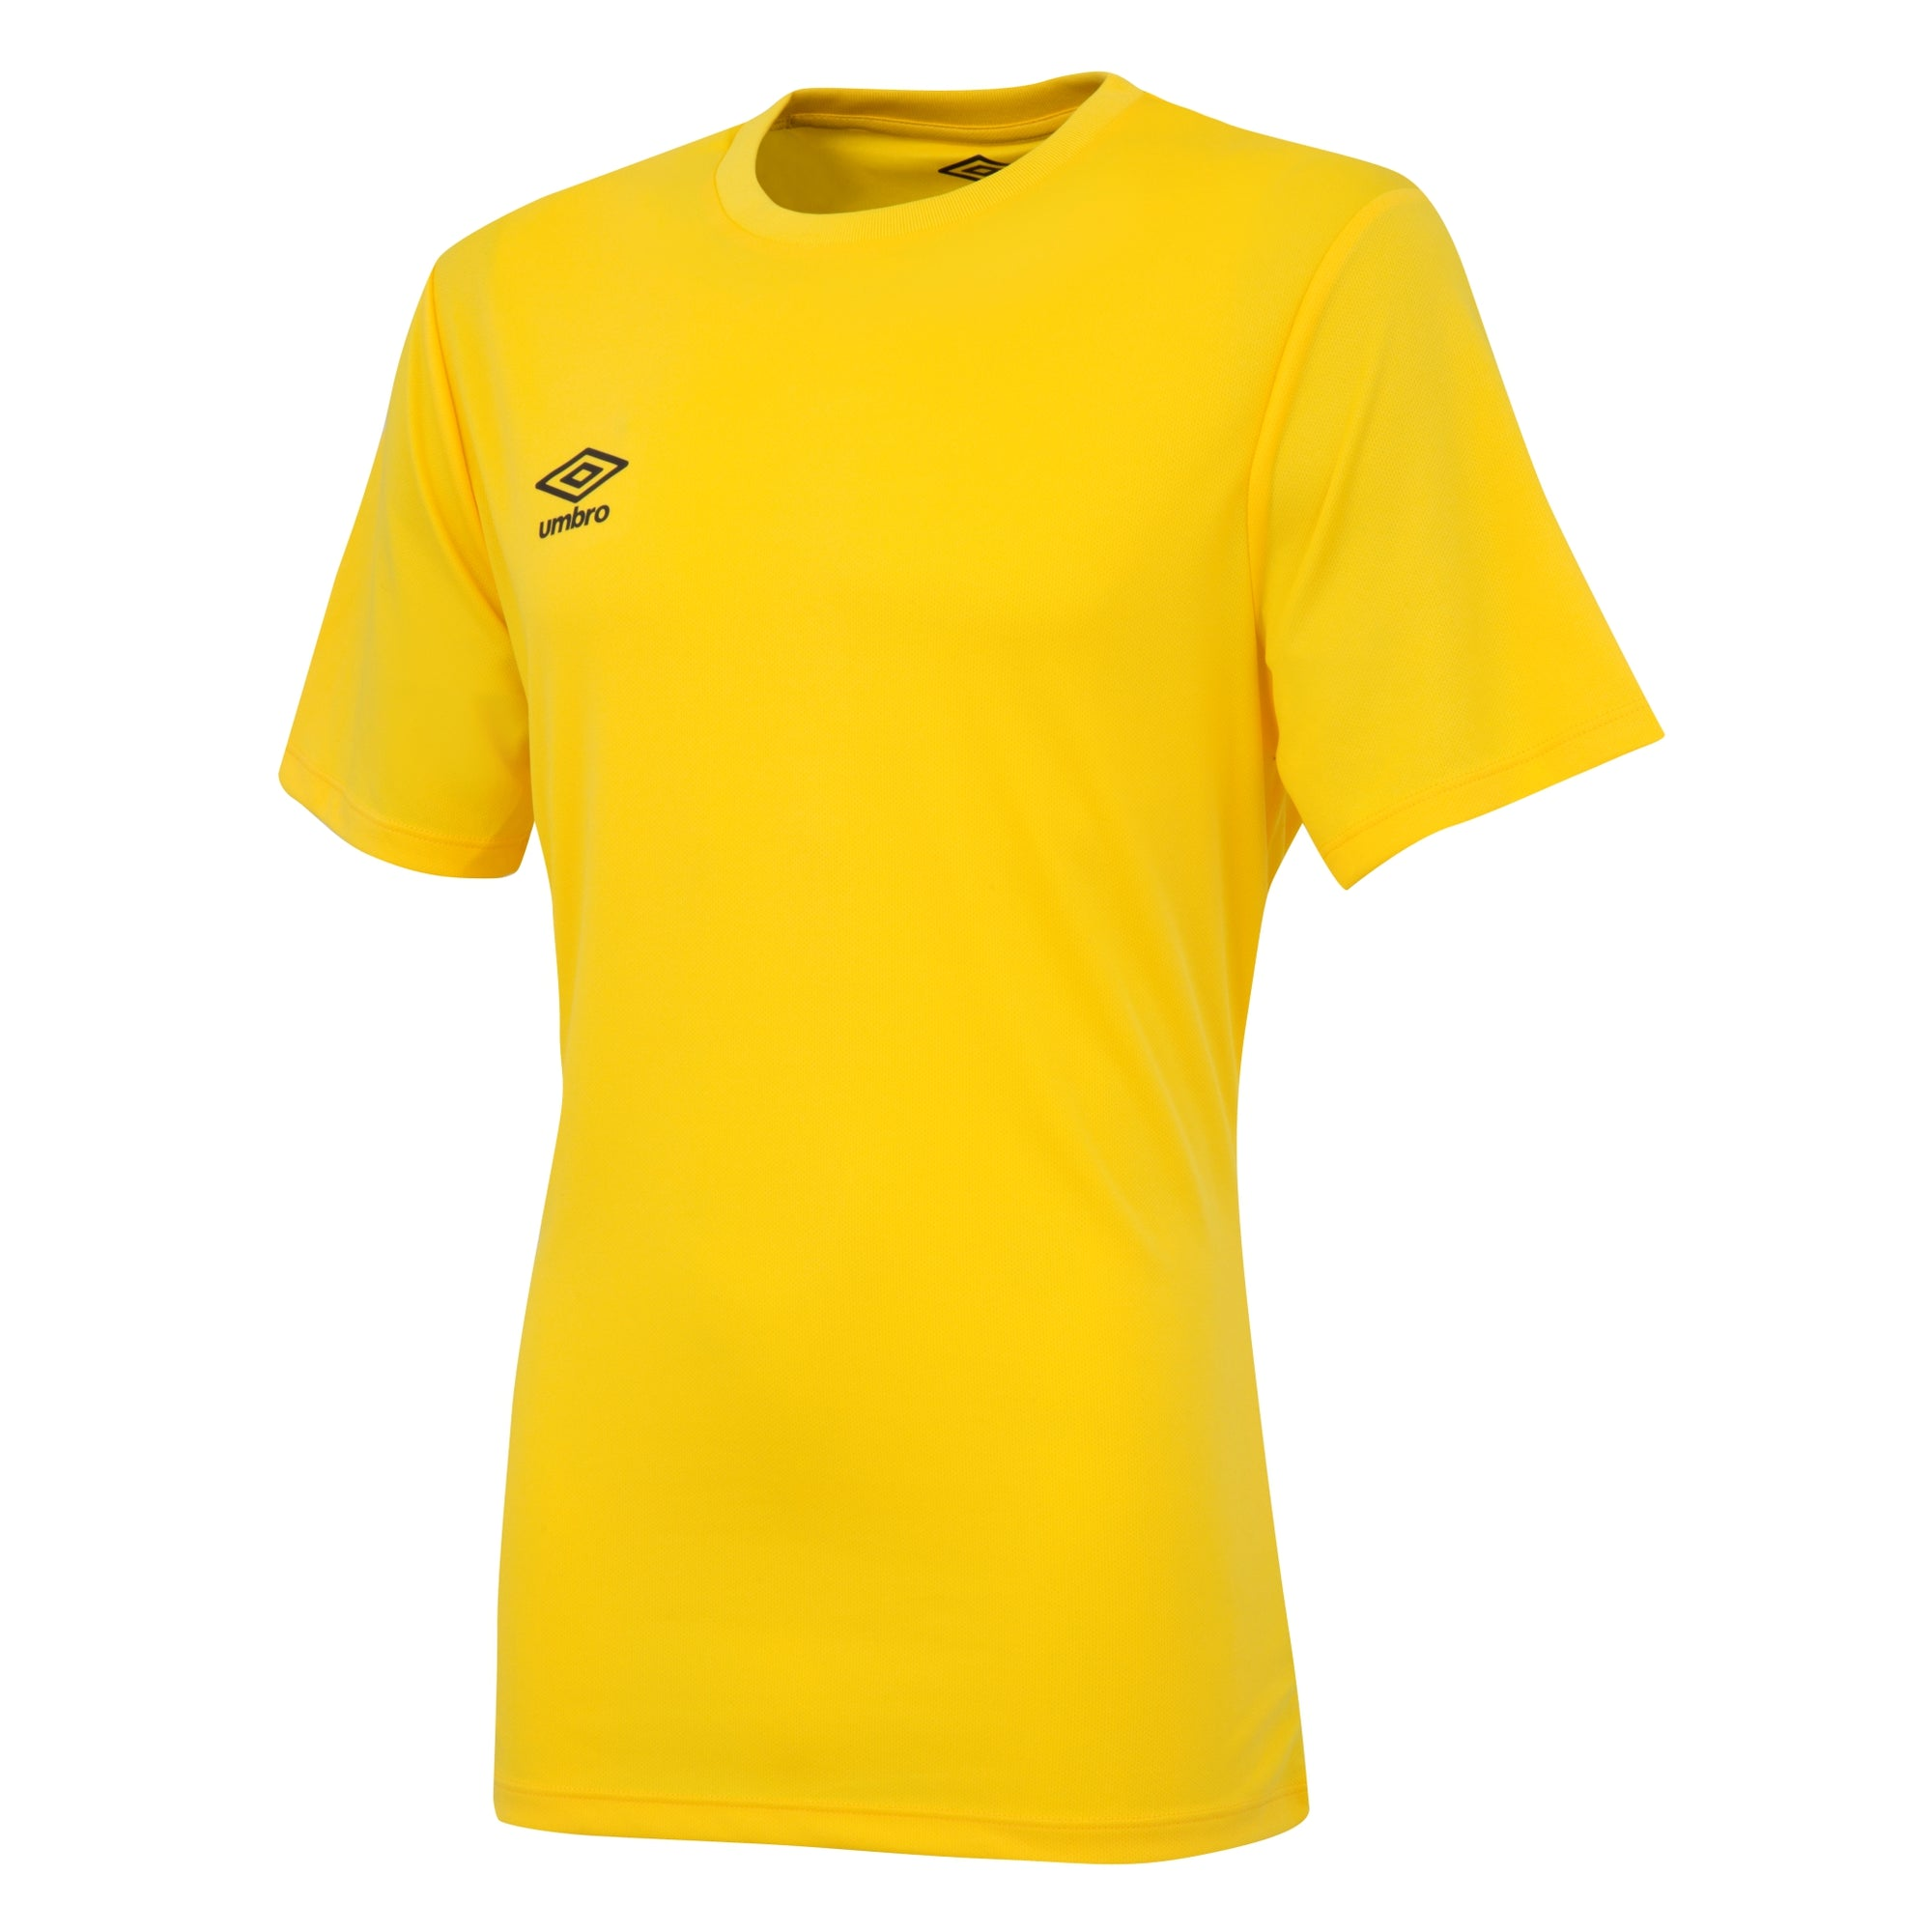 Umbro short sleeve club jersey in yellow with black printed Umbro logo